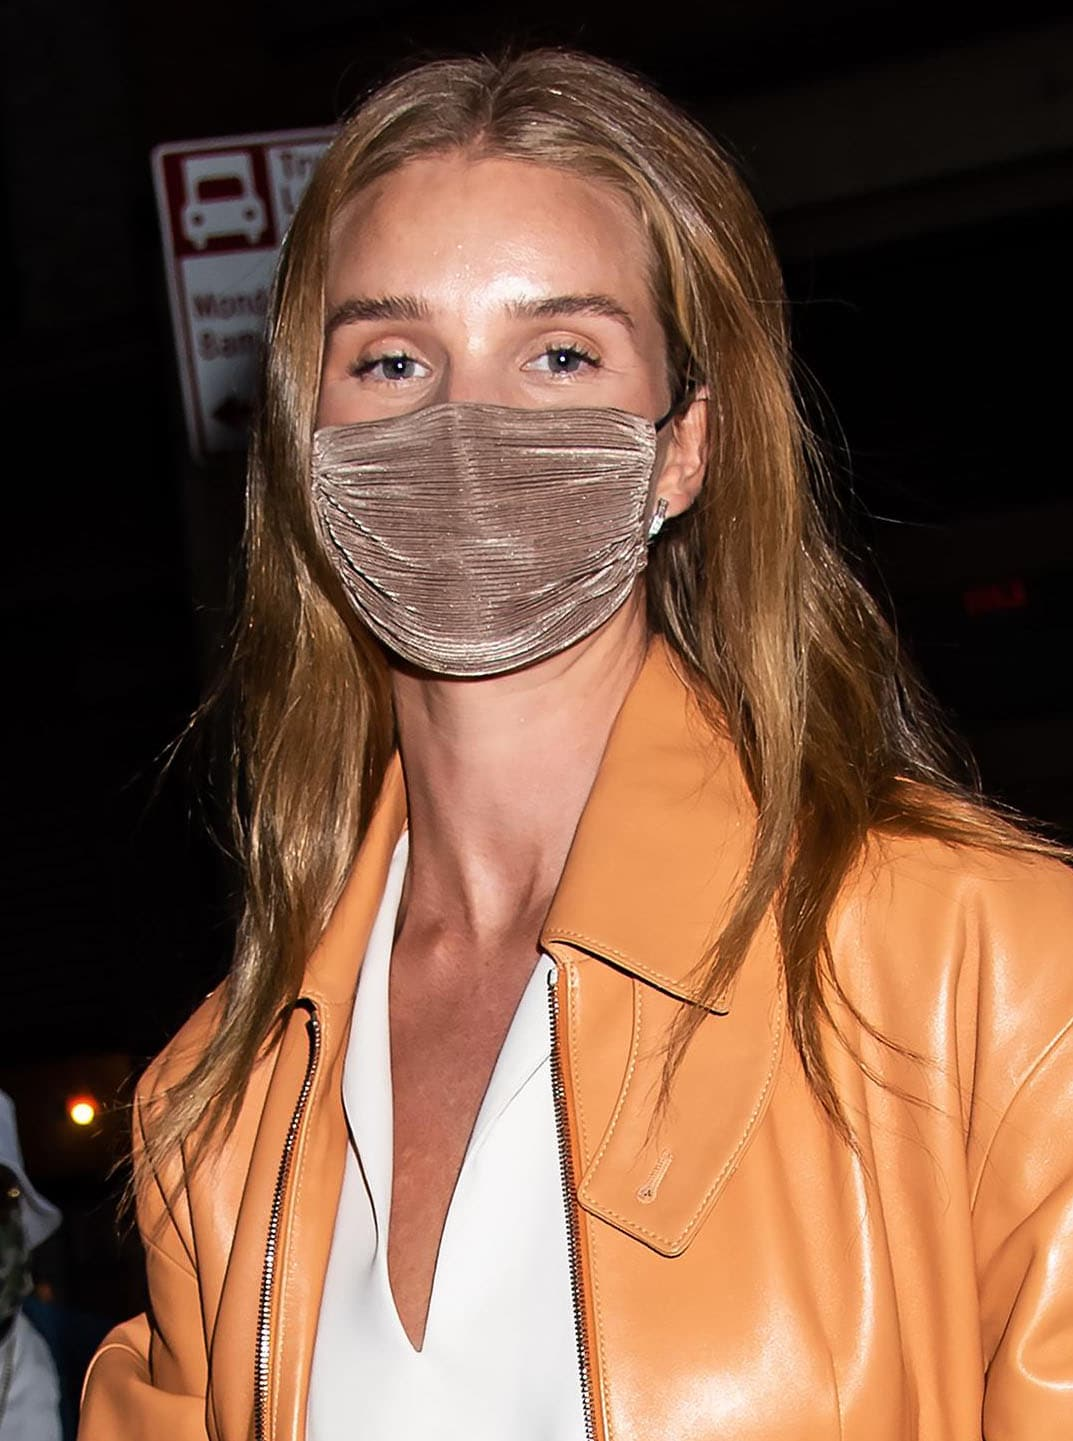 Rosie Huntington-Whiteley wears light makeup with mascara and brushed up brows